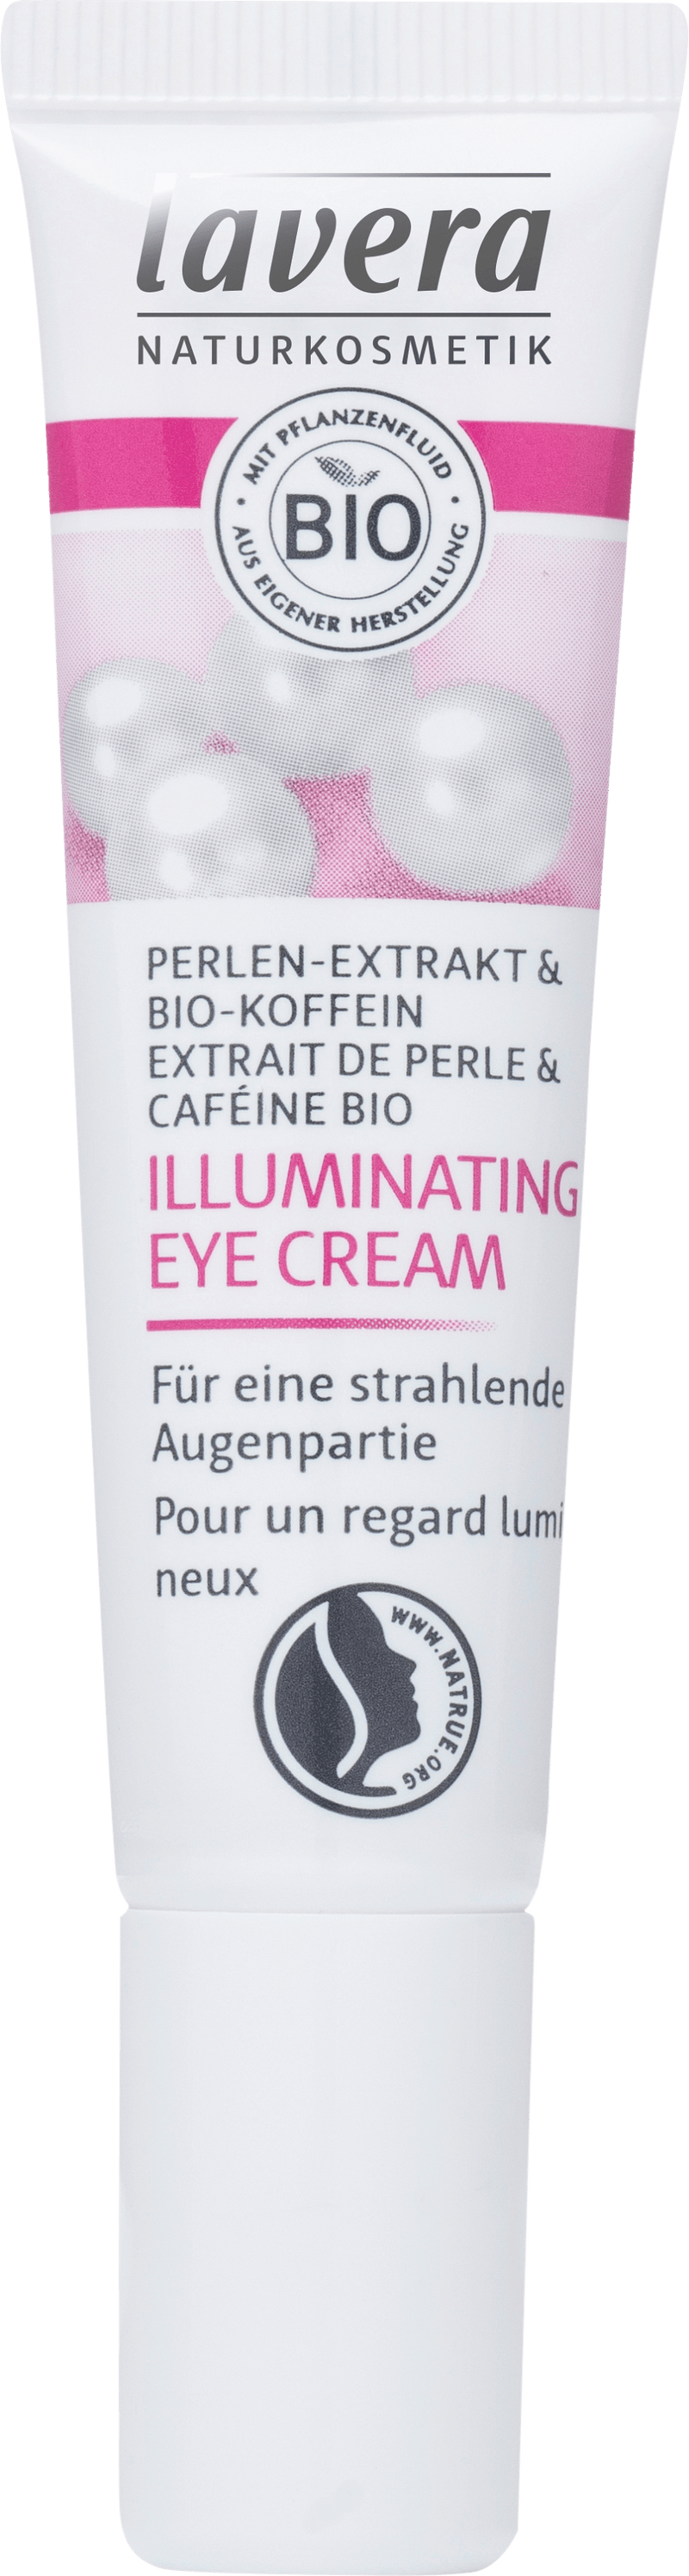 Augencreme Illuminating, 15 ml